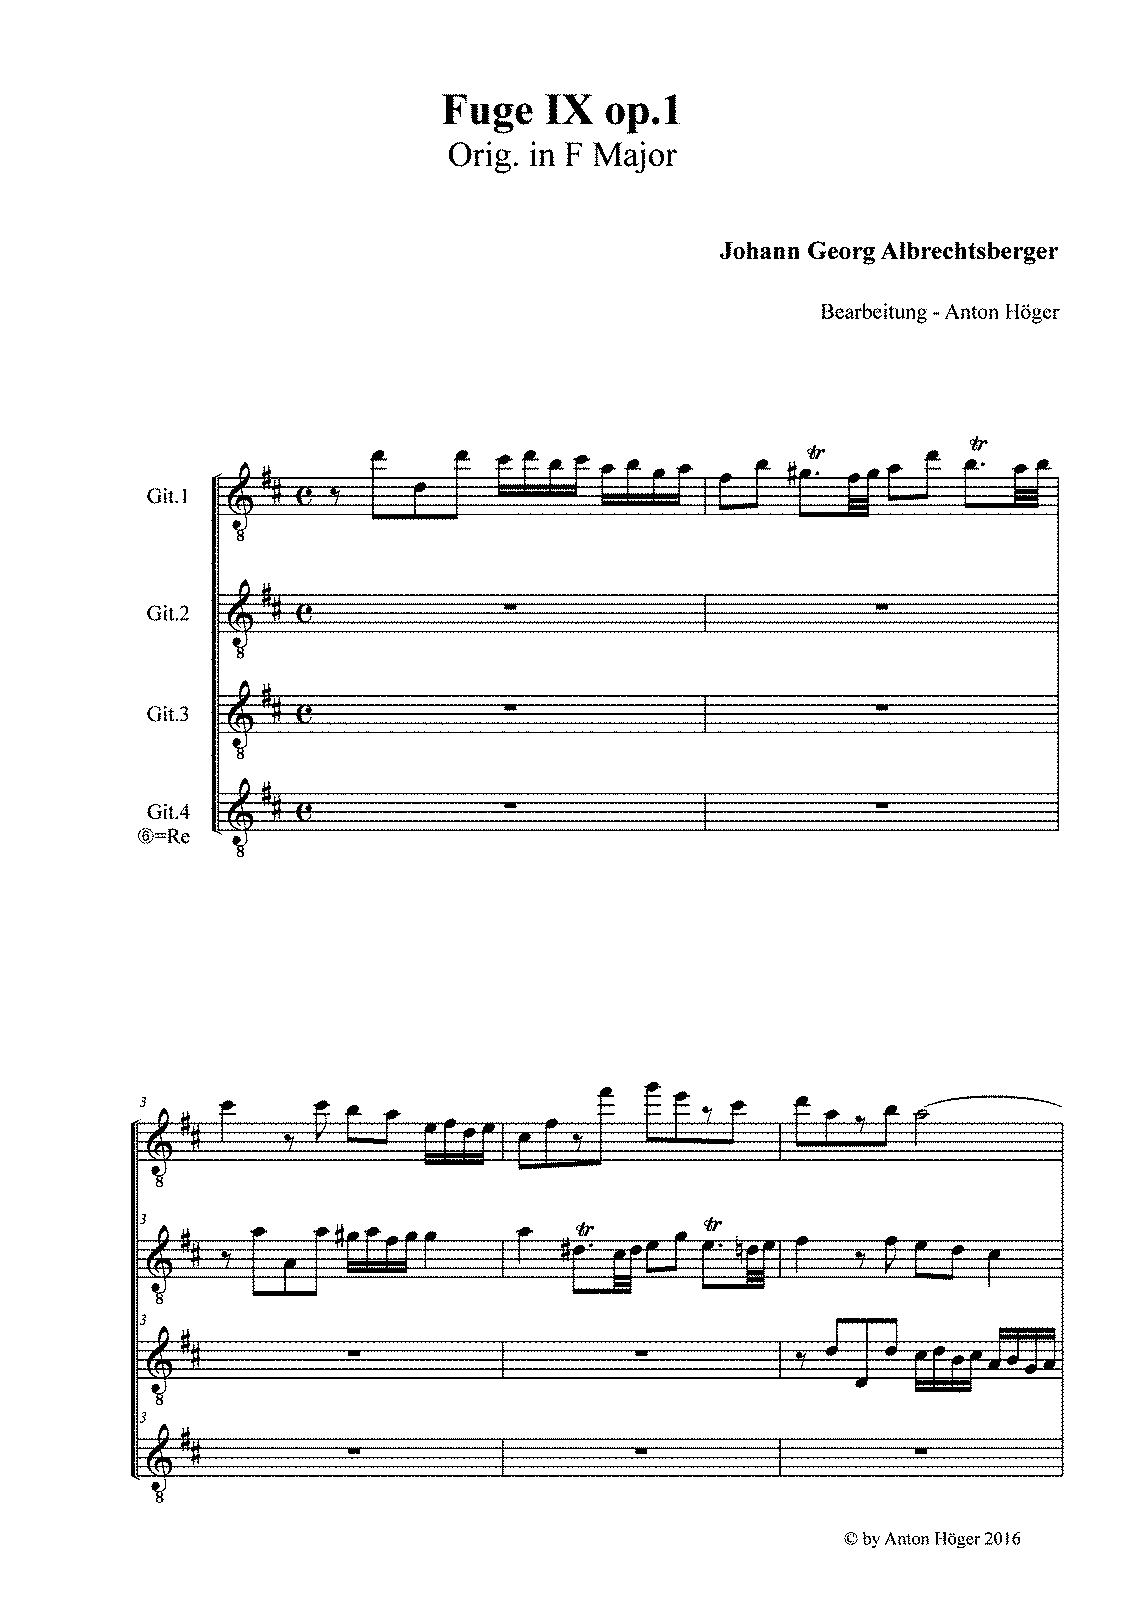 PMLP180830-Albrechtsberger - Fuge IX in F Major Op1.pdf